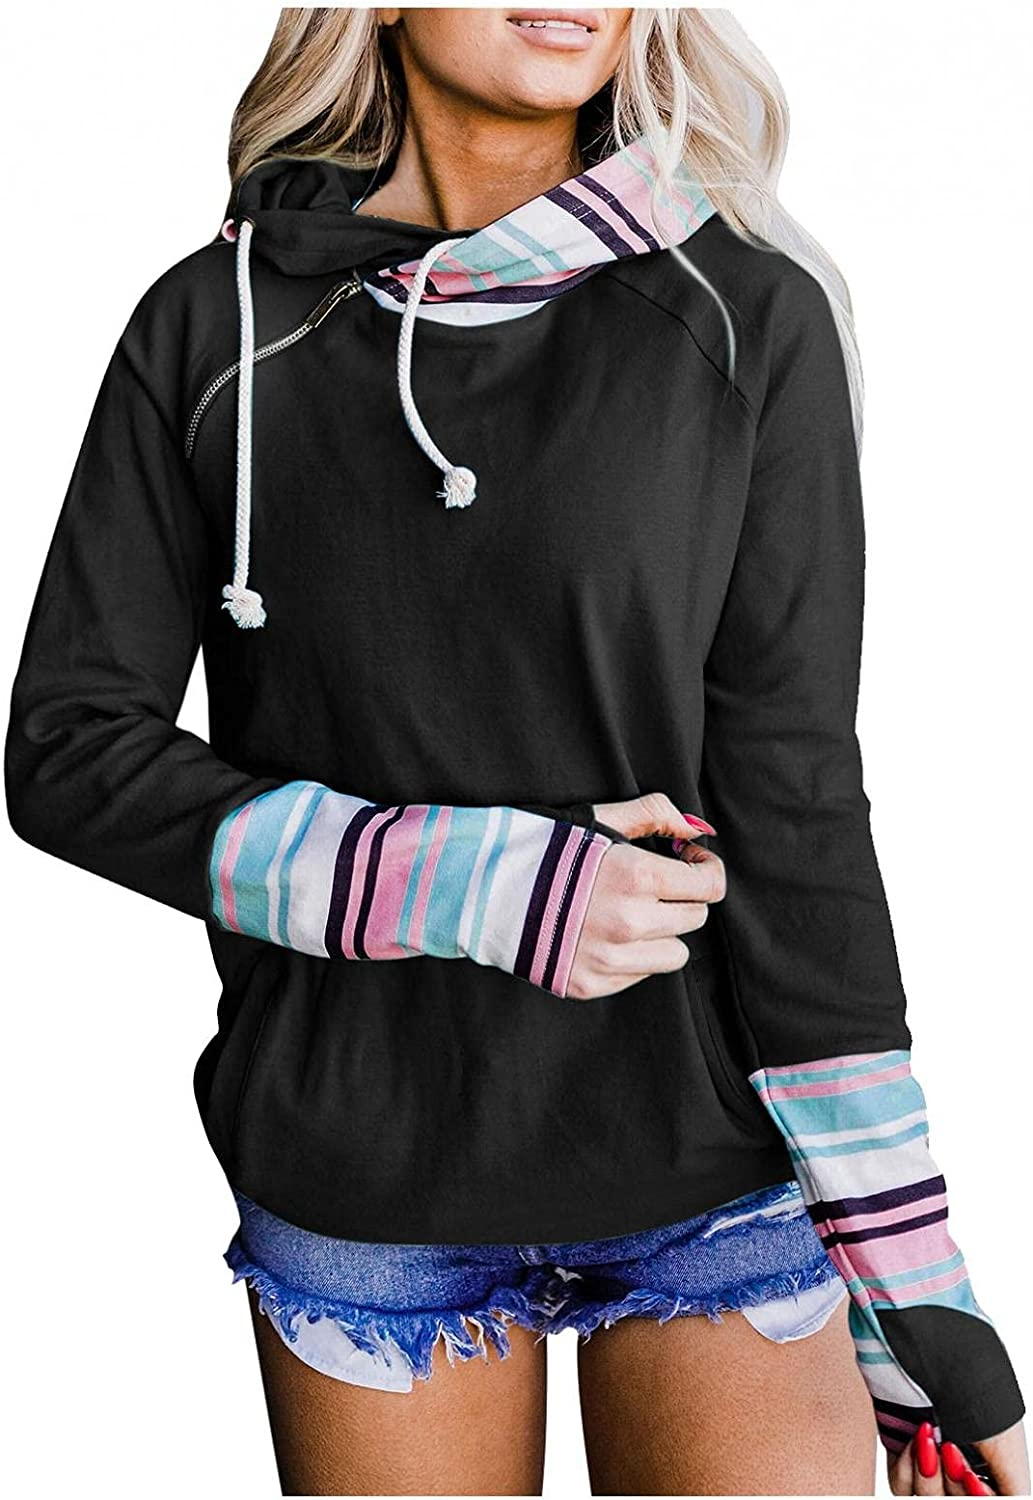 Gerichy Hoodies for Women, Womens Long Sleeve Drawstring Fall Hoodies Cute Oversized Sweater Cool Hoodies with Pocket